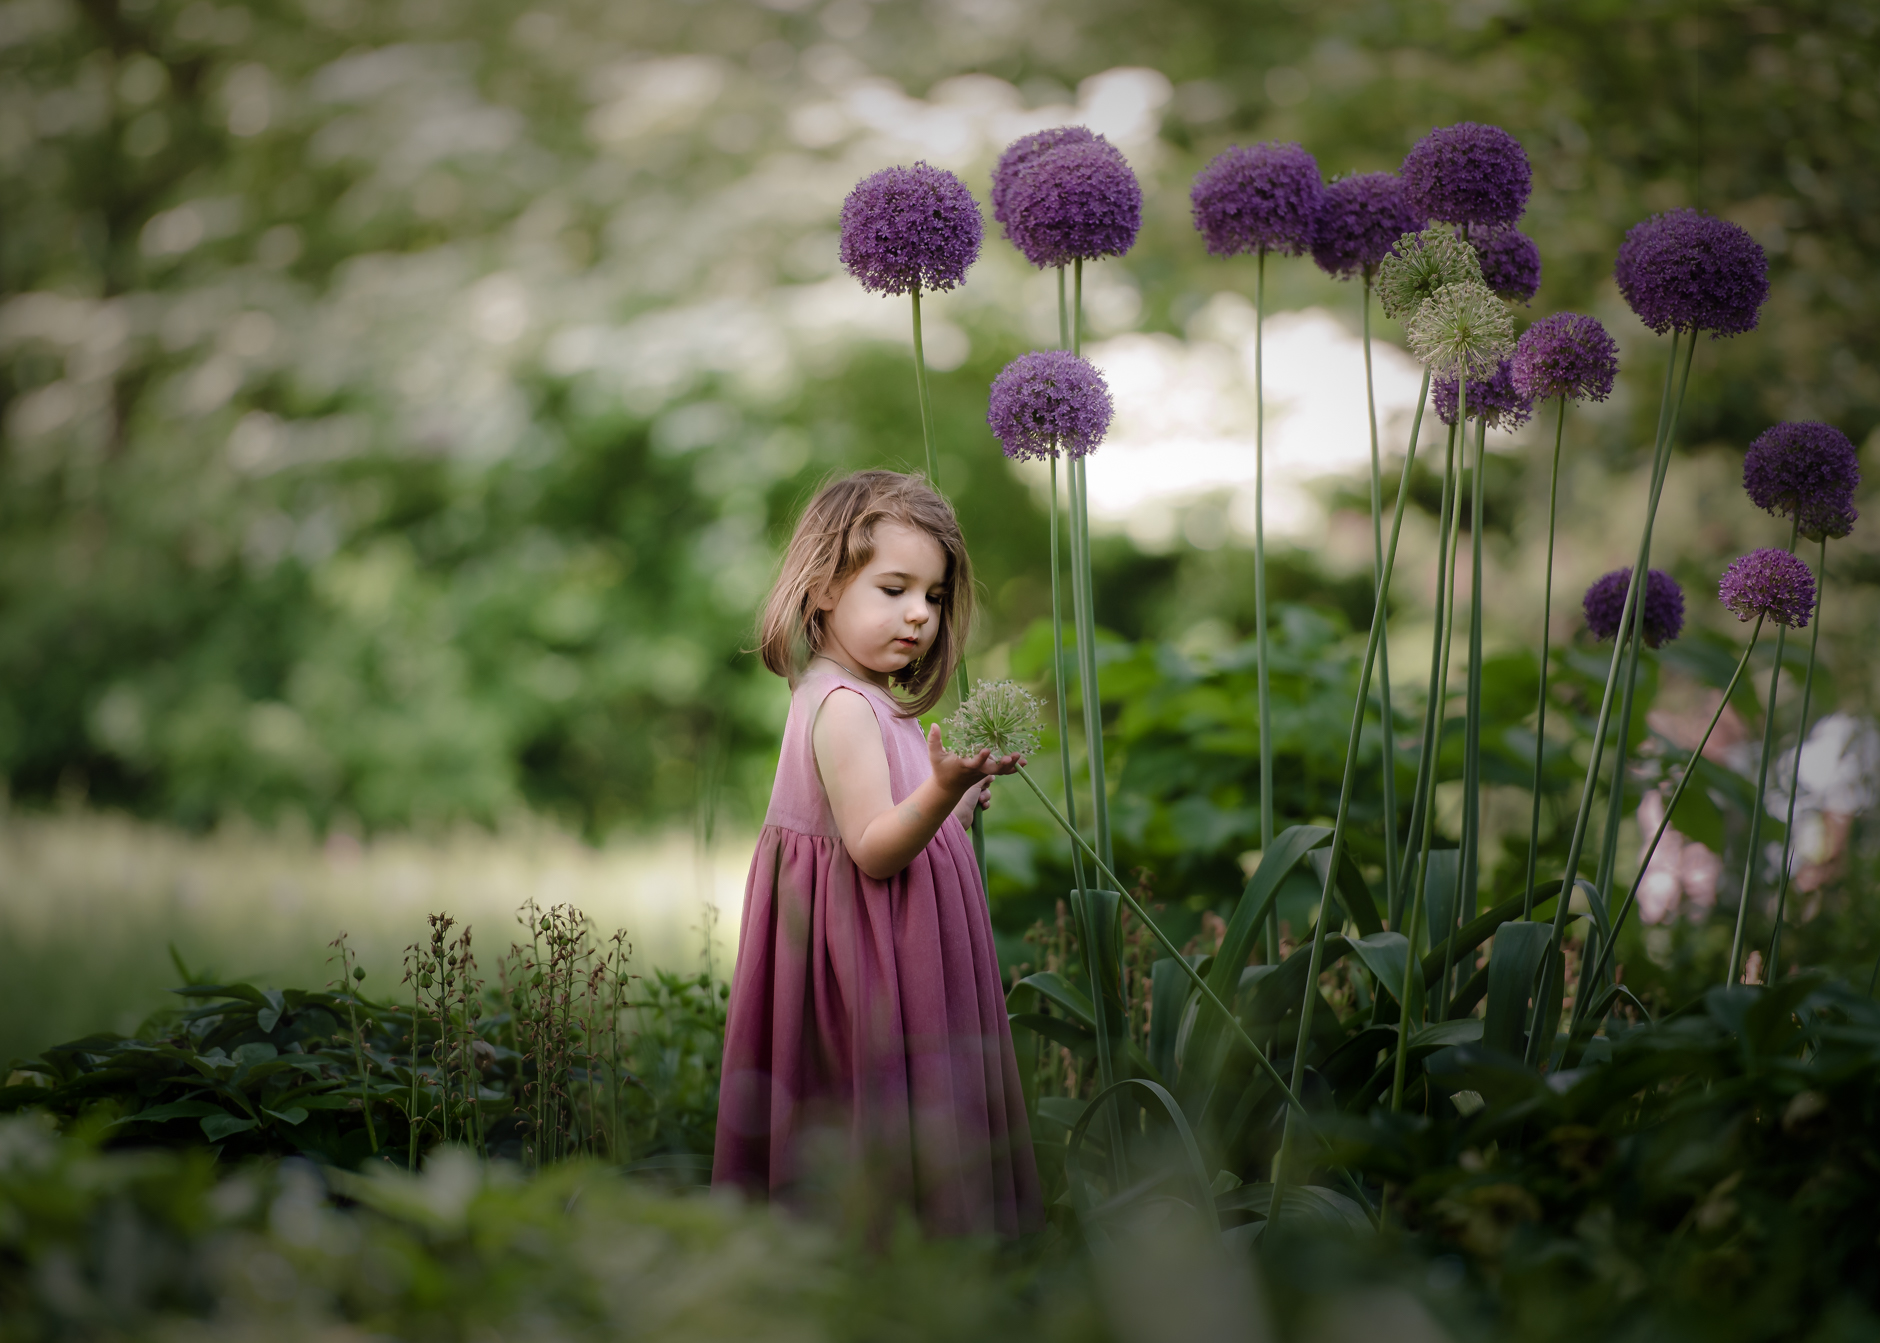 St-louis-child-photographer-Botanical-gardens-photoshoot-vanessa-smith-photography (4 of 11)